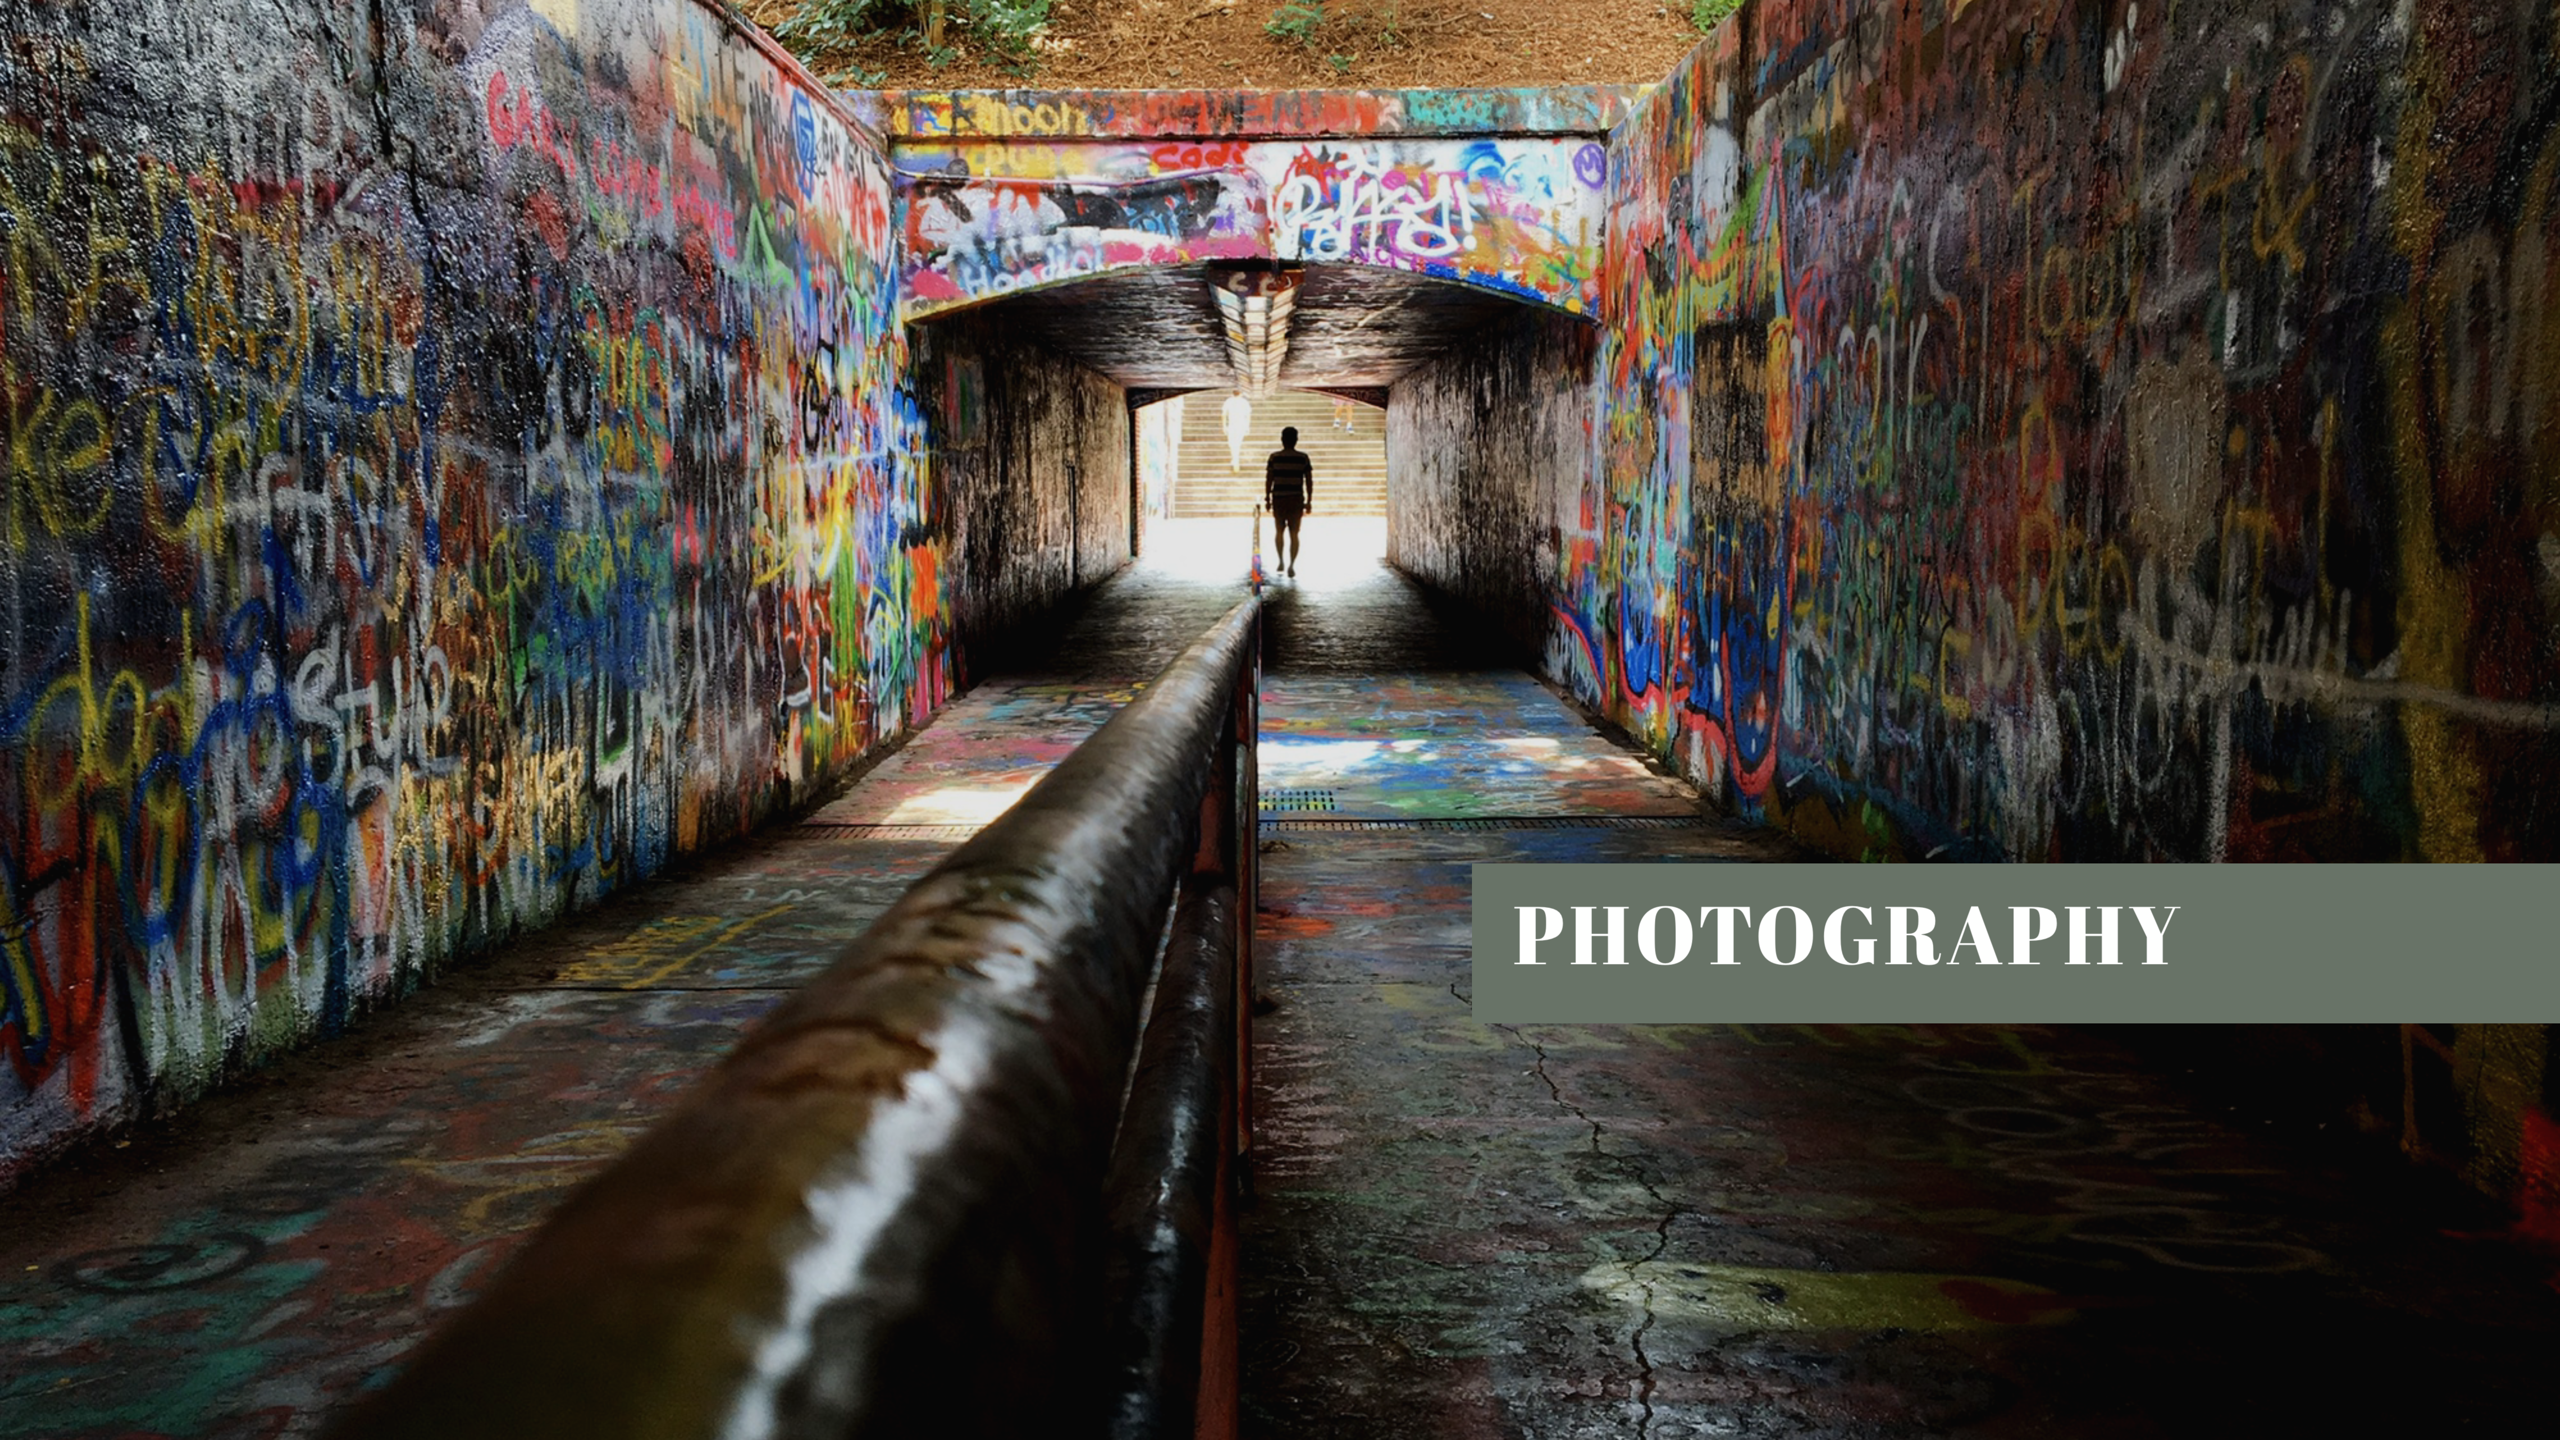 I have a passion for photography and set up a gallery displaying a rotating selection of my work.